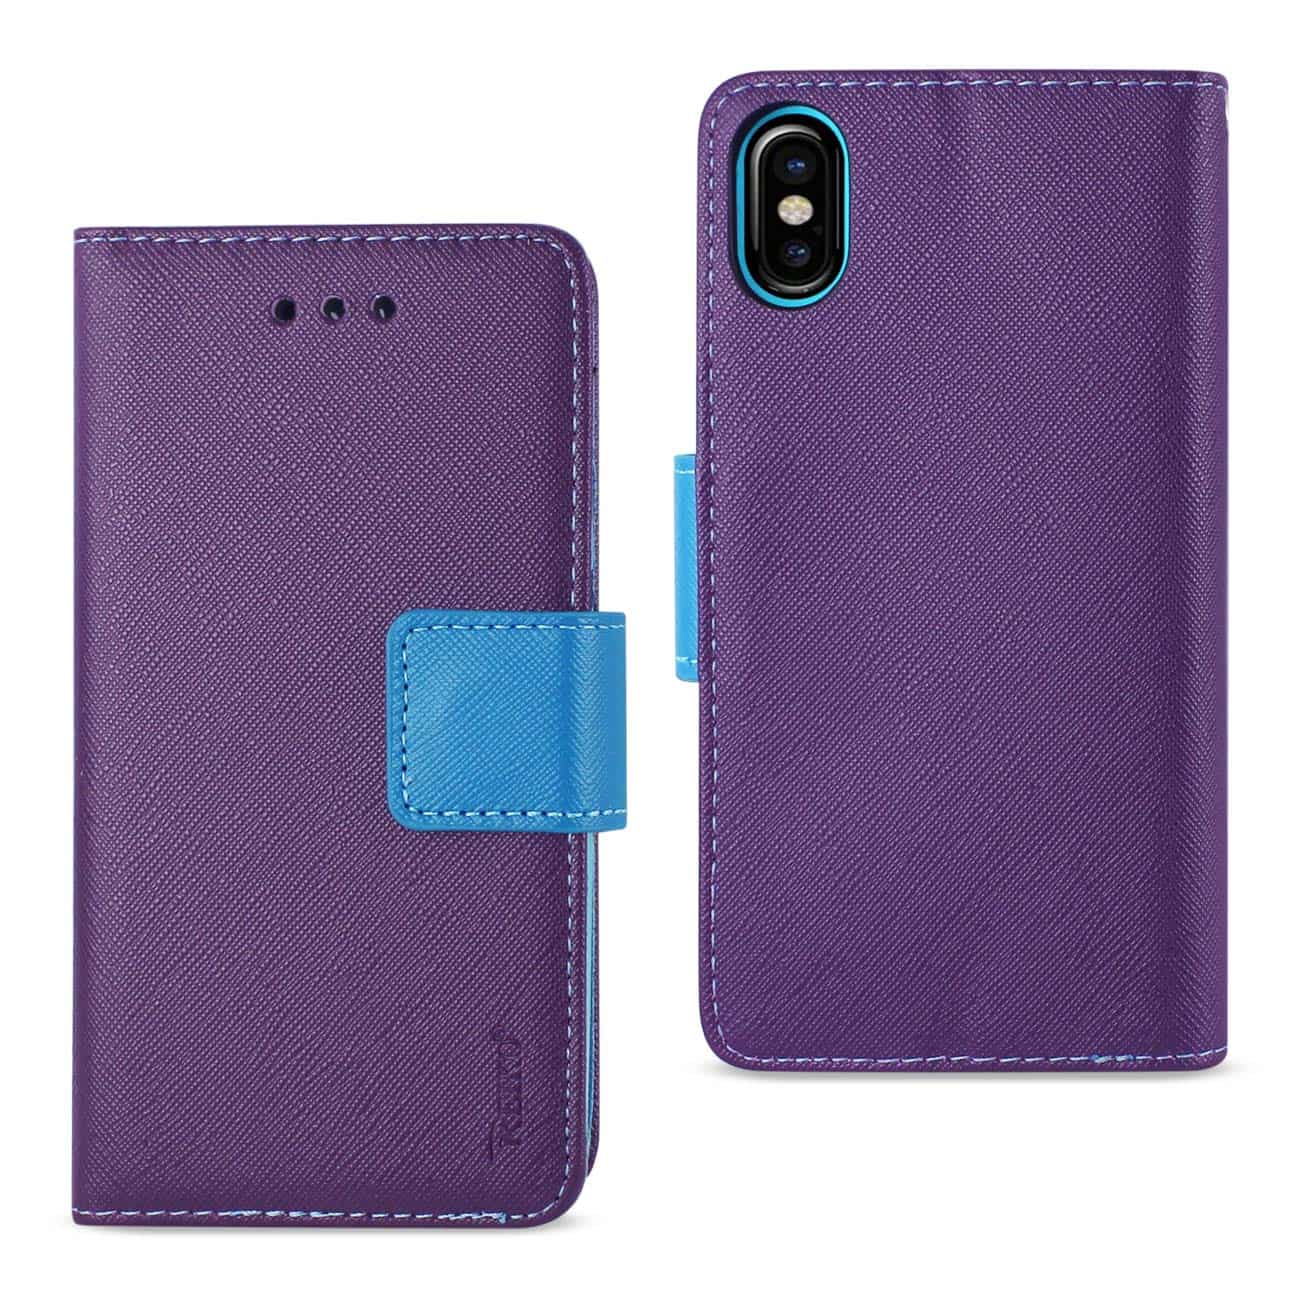 IPHONE X 3-IN-1 WALLET CASE IN PURPLE